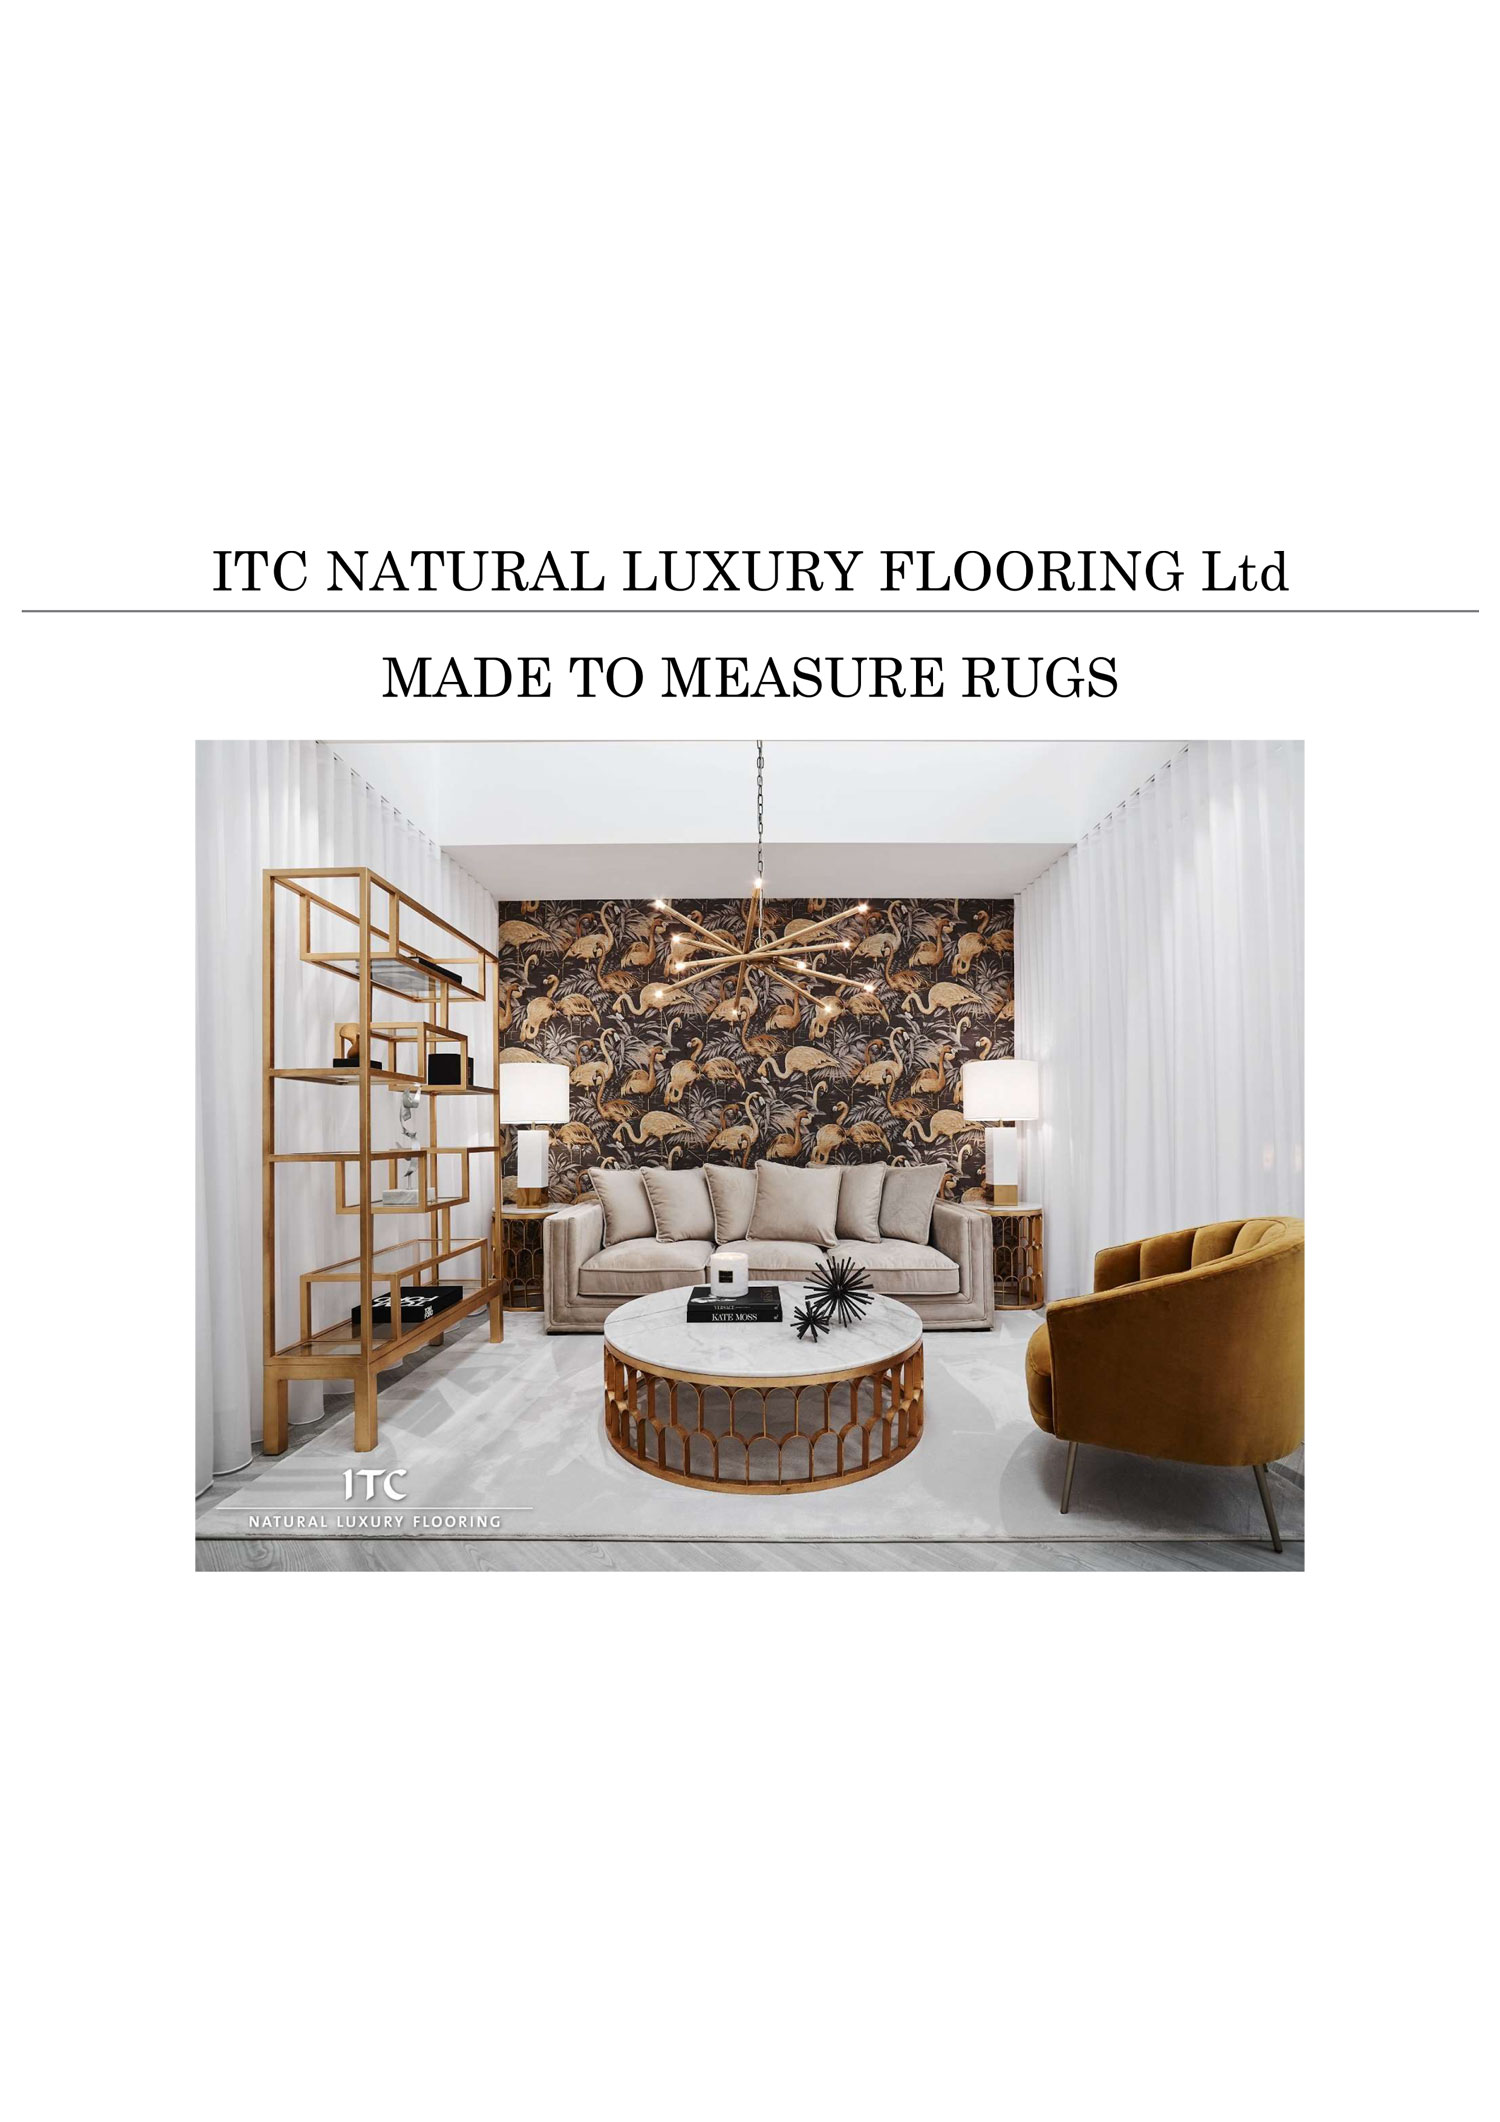 ITC Natural Luxury Flooring Ltd